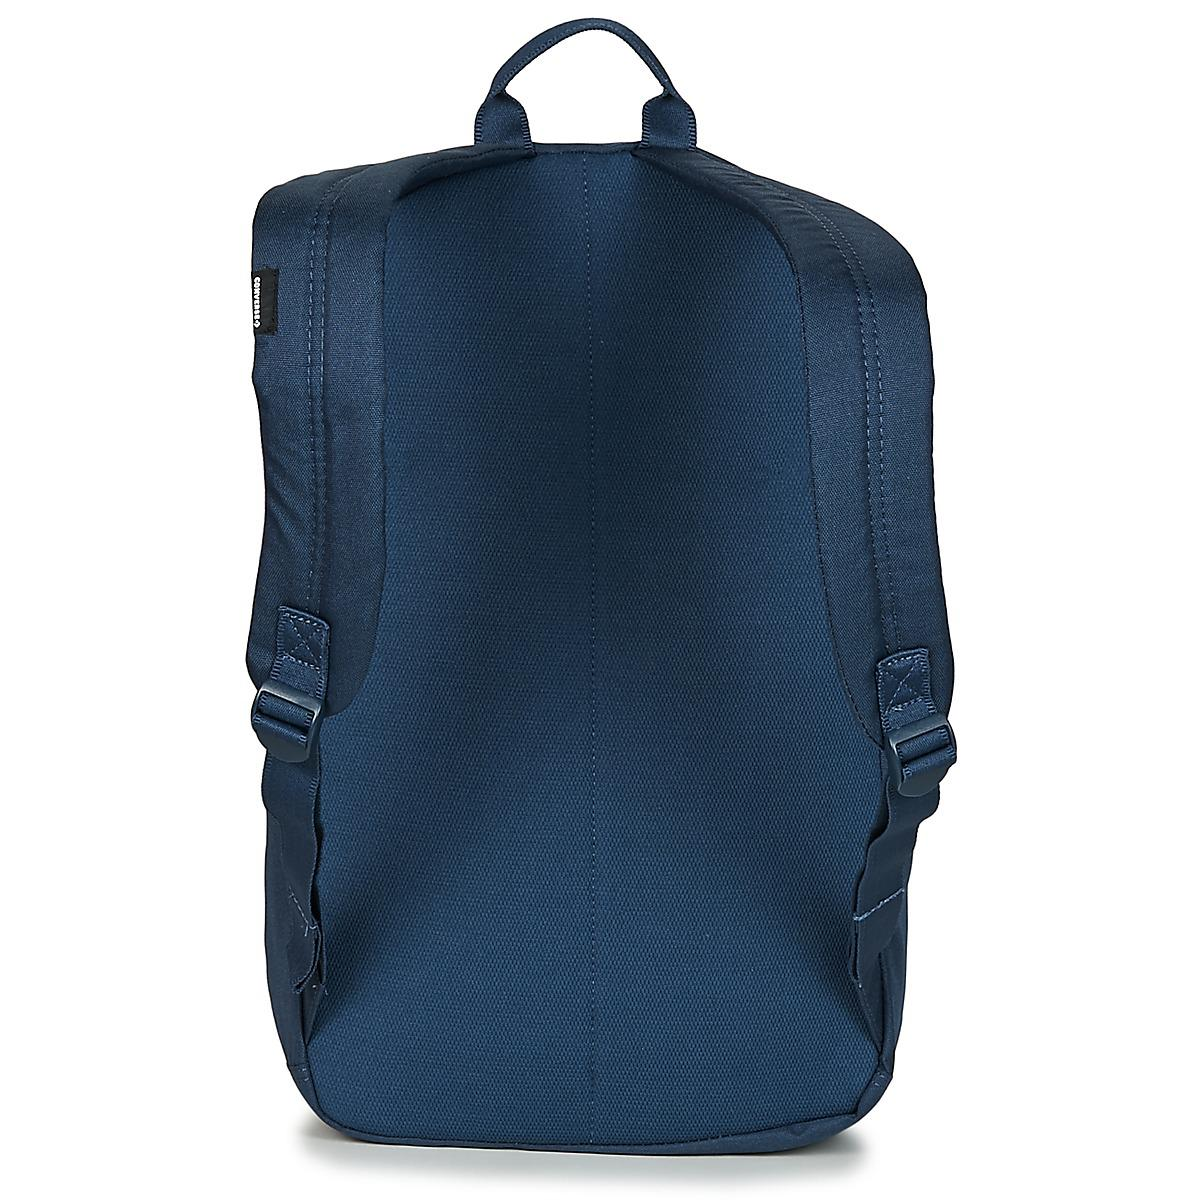 Converse - Blue Edc 22 Backpack for Men - Lyst. View fullscreen 1f58fcafce489